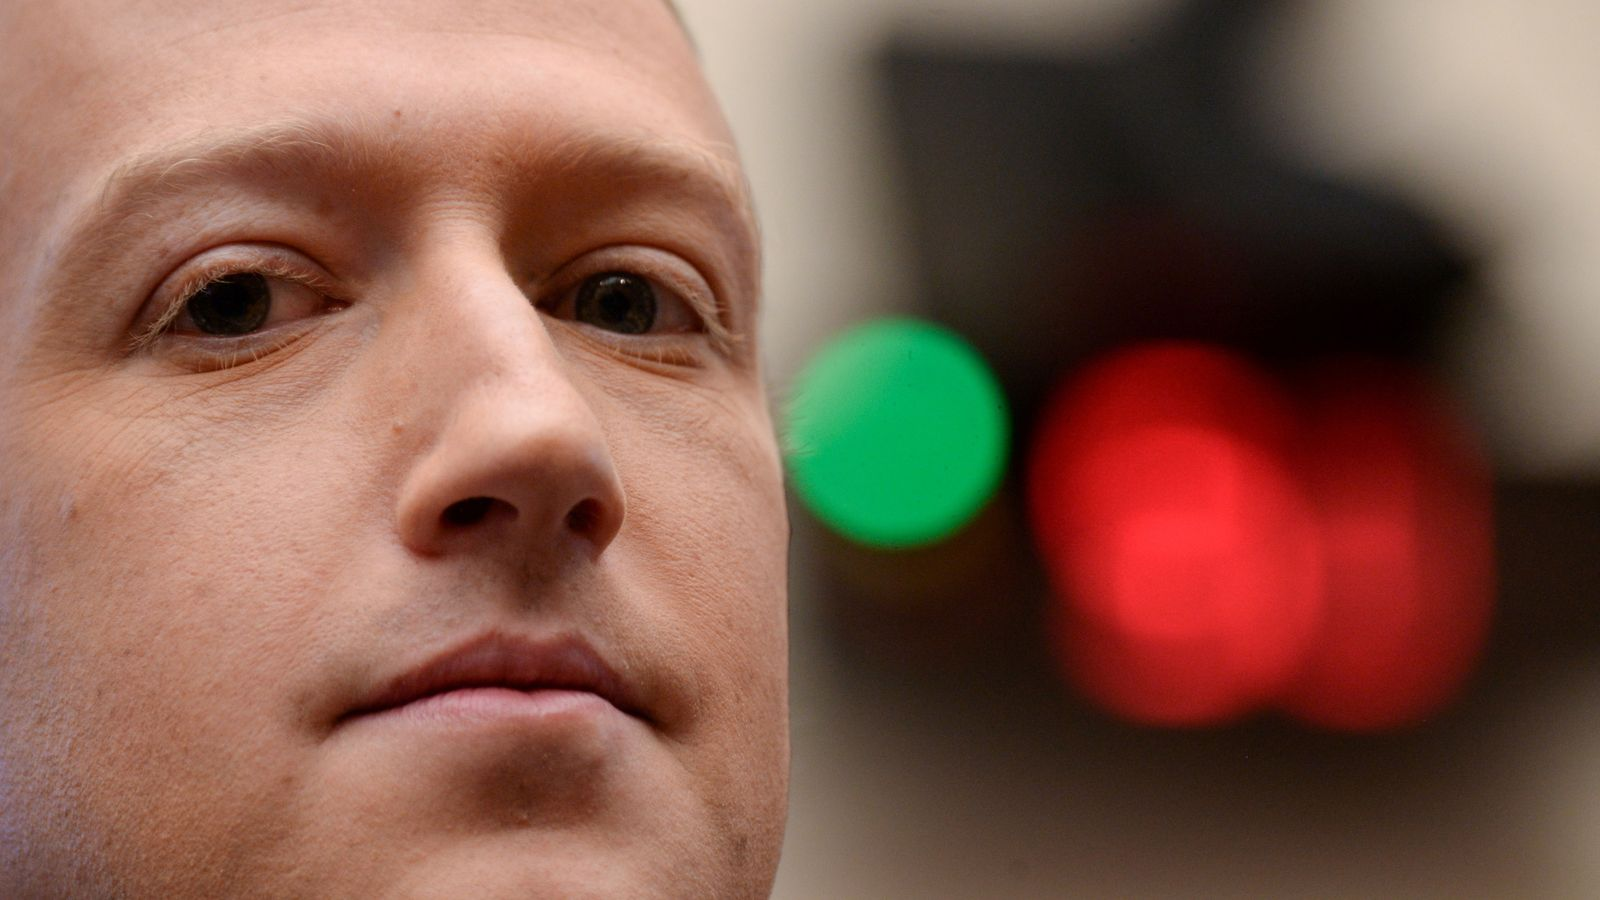 Facebook plans to hire 10,000 people in Europe to build its metaverse